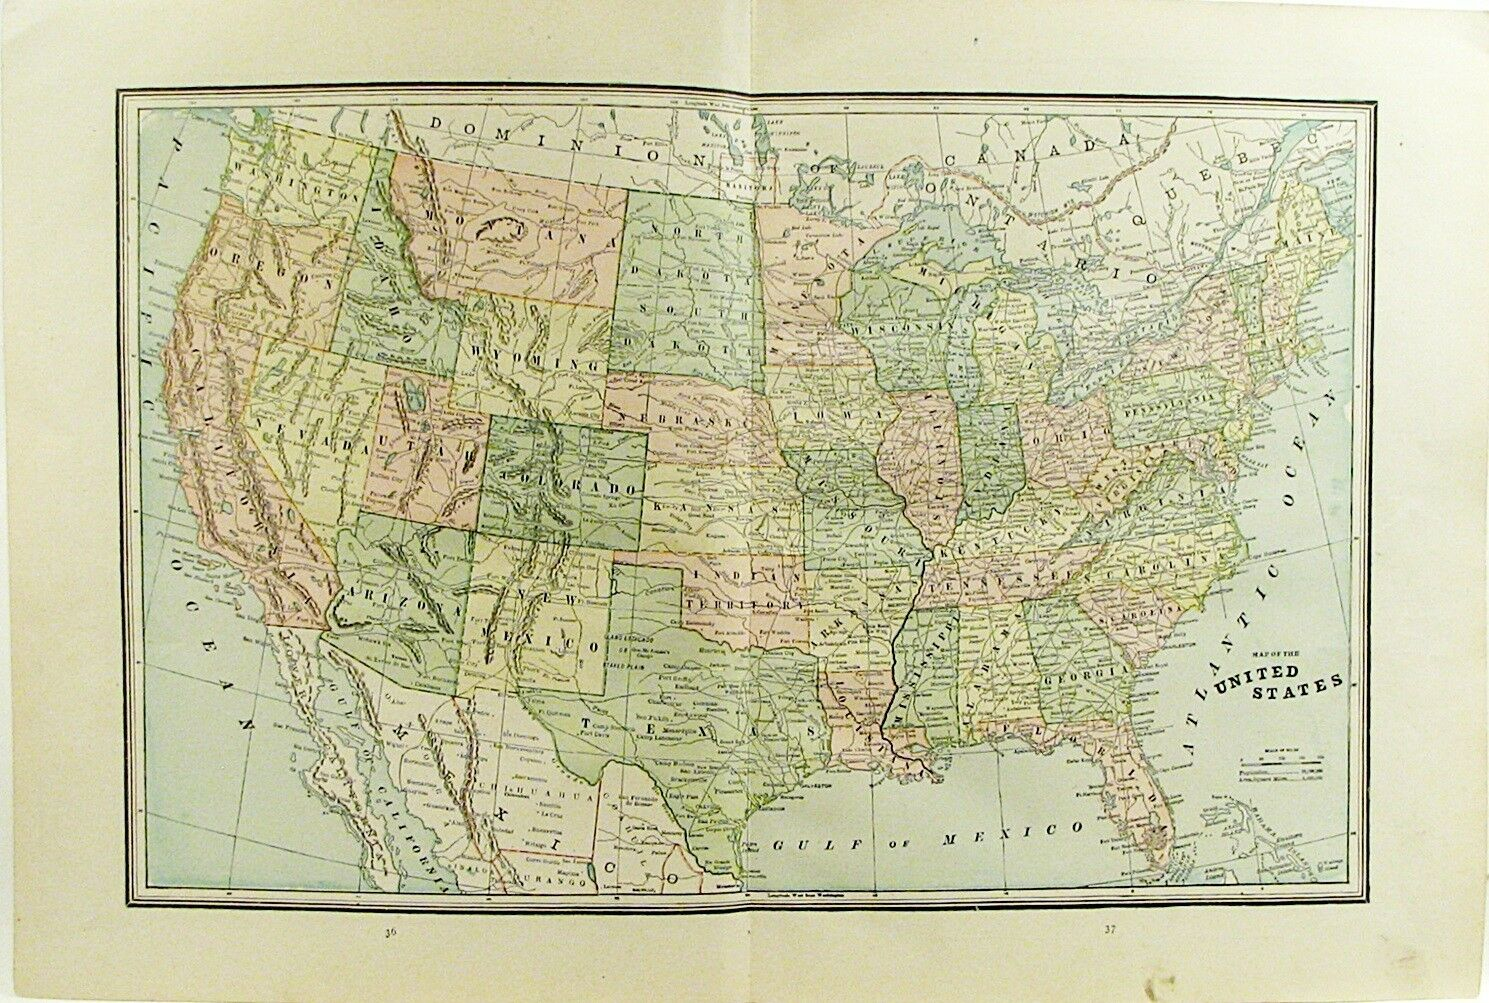 North America Maps Maps Atlases Globes Antiques - 1890 map of us